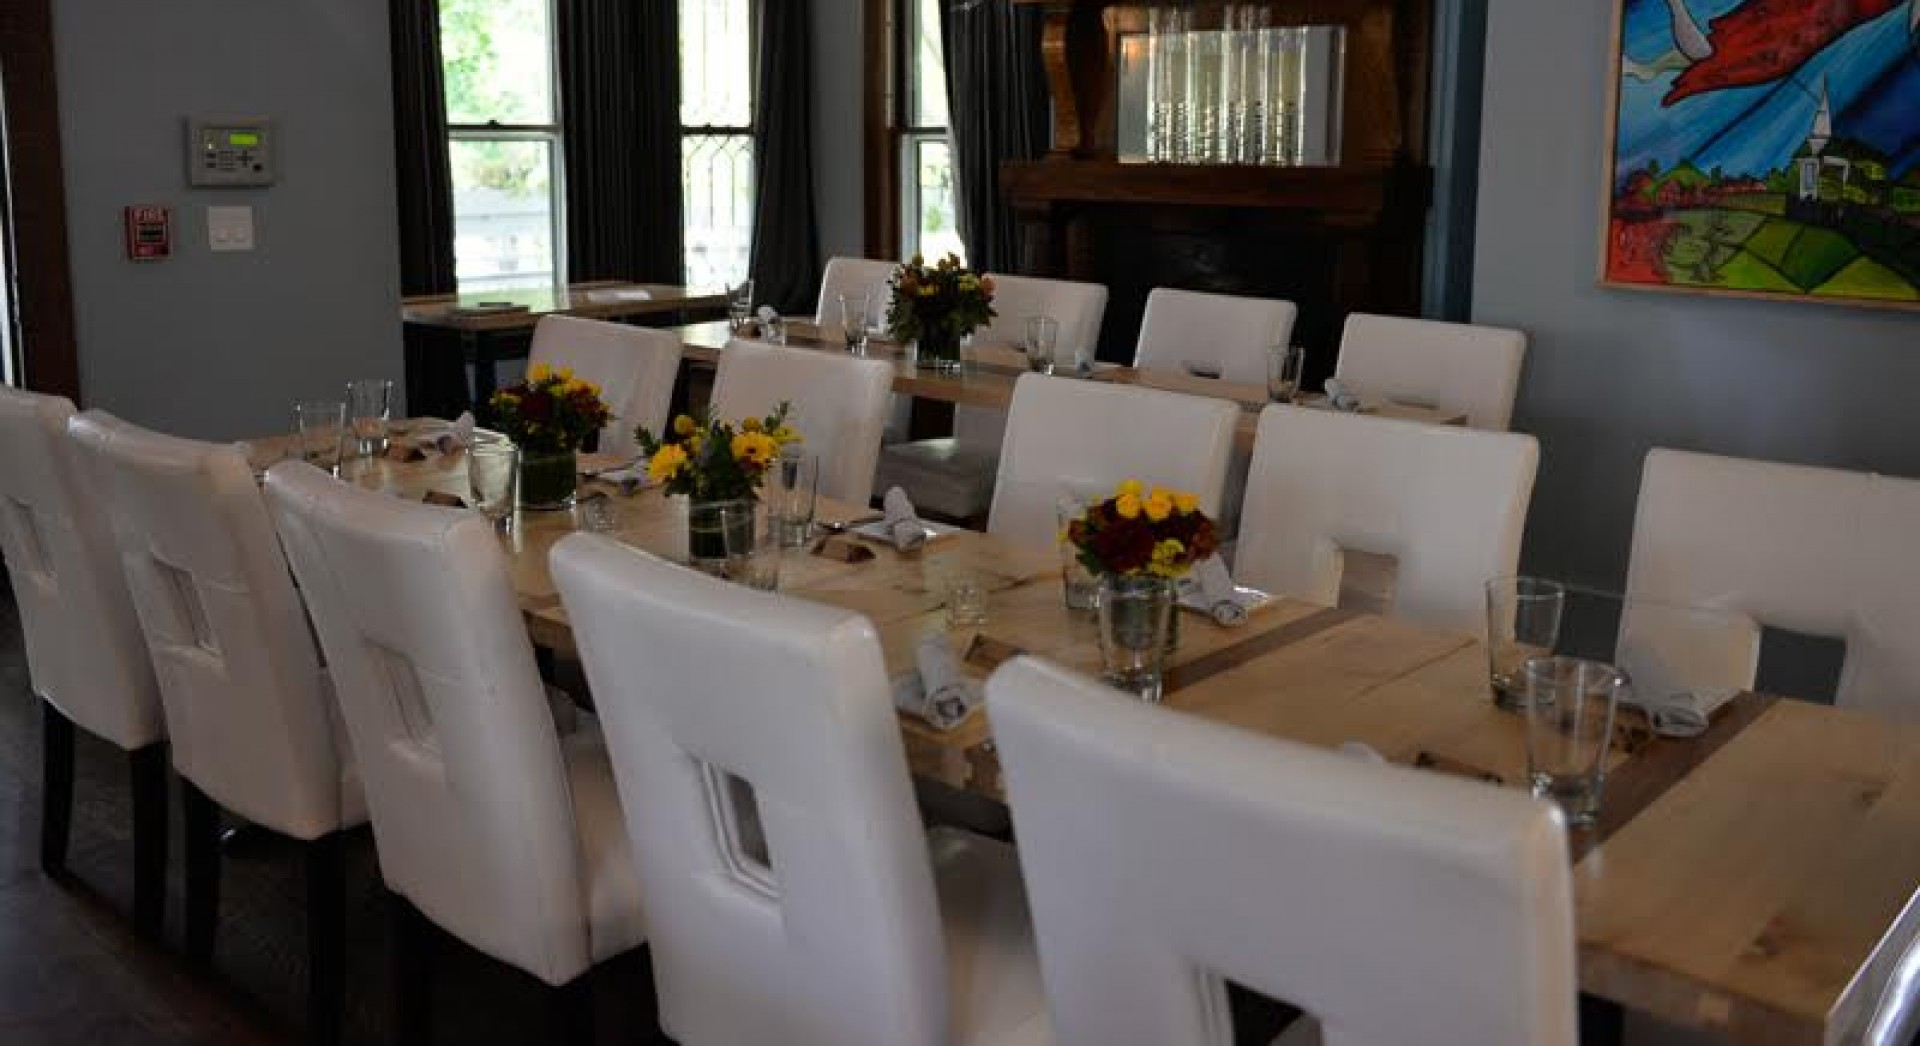 cropped-wedding-tables-inside.jpg